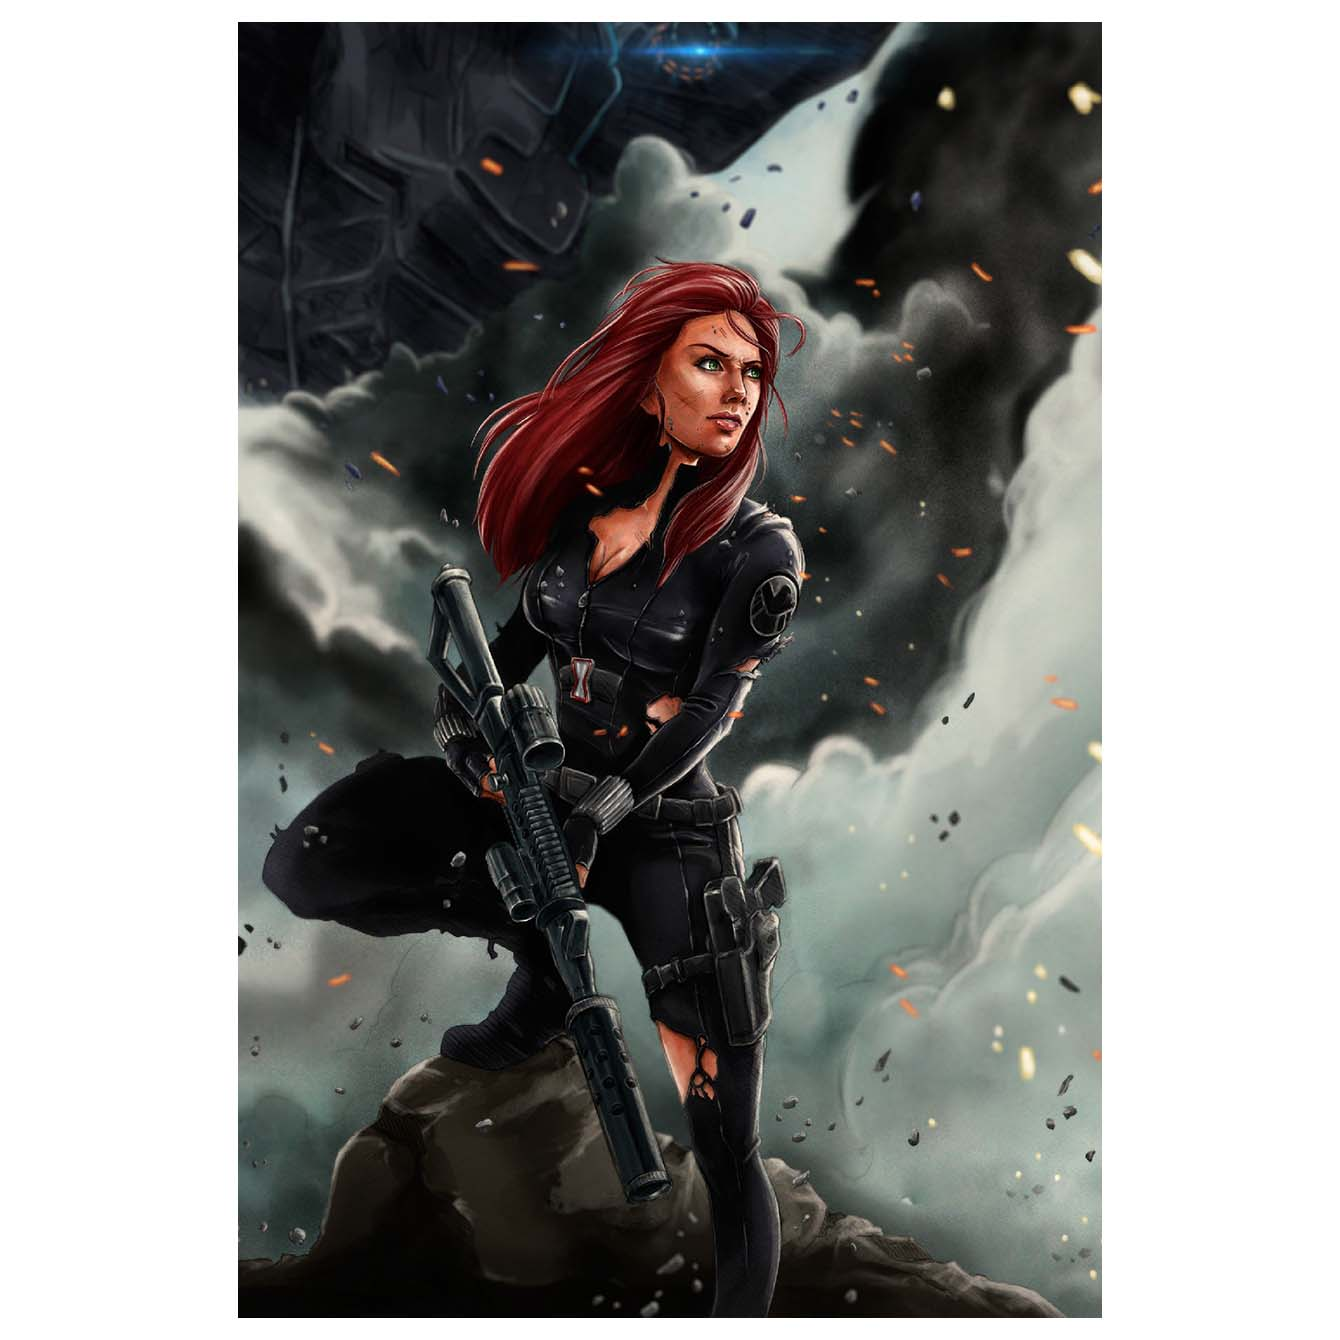 Black Widow Action Poster